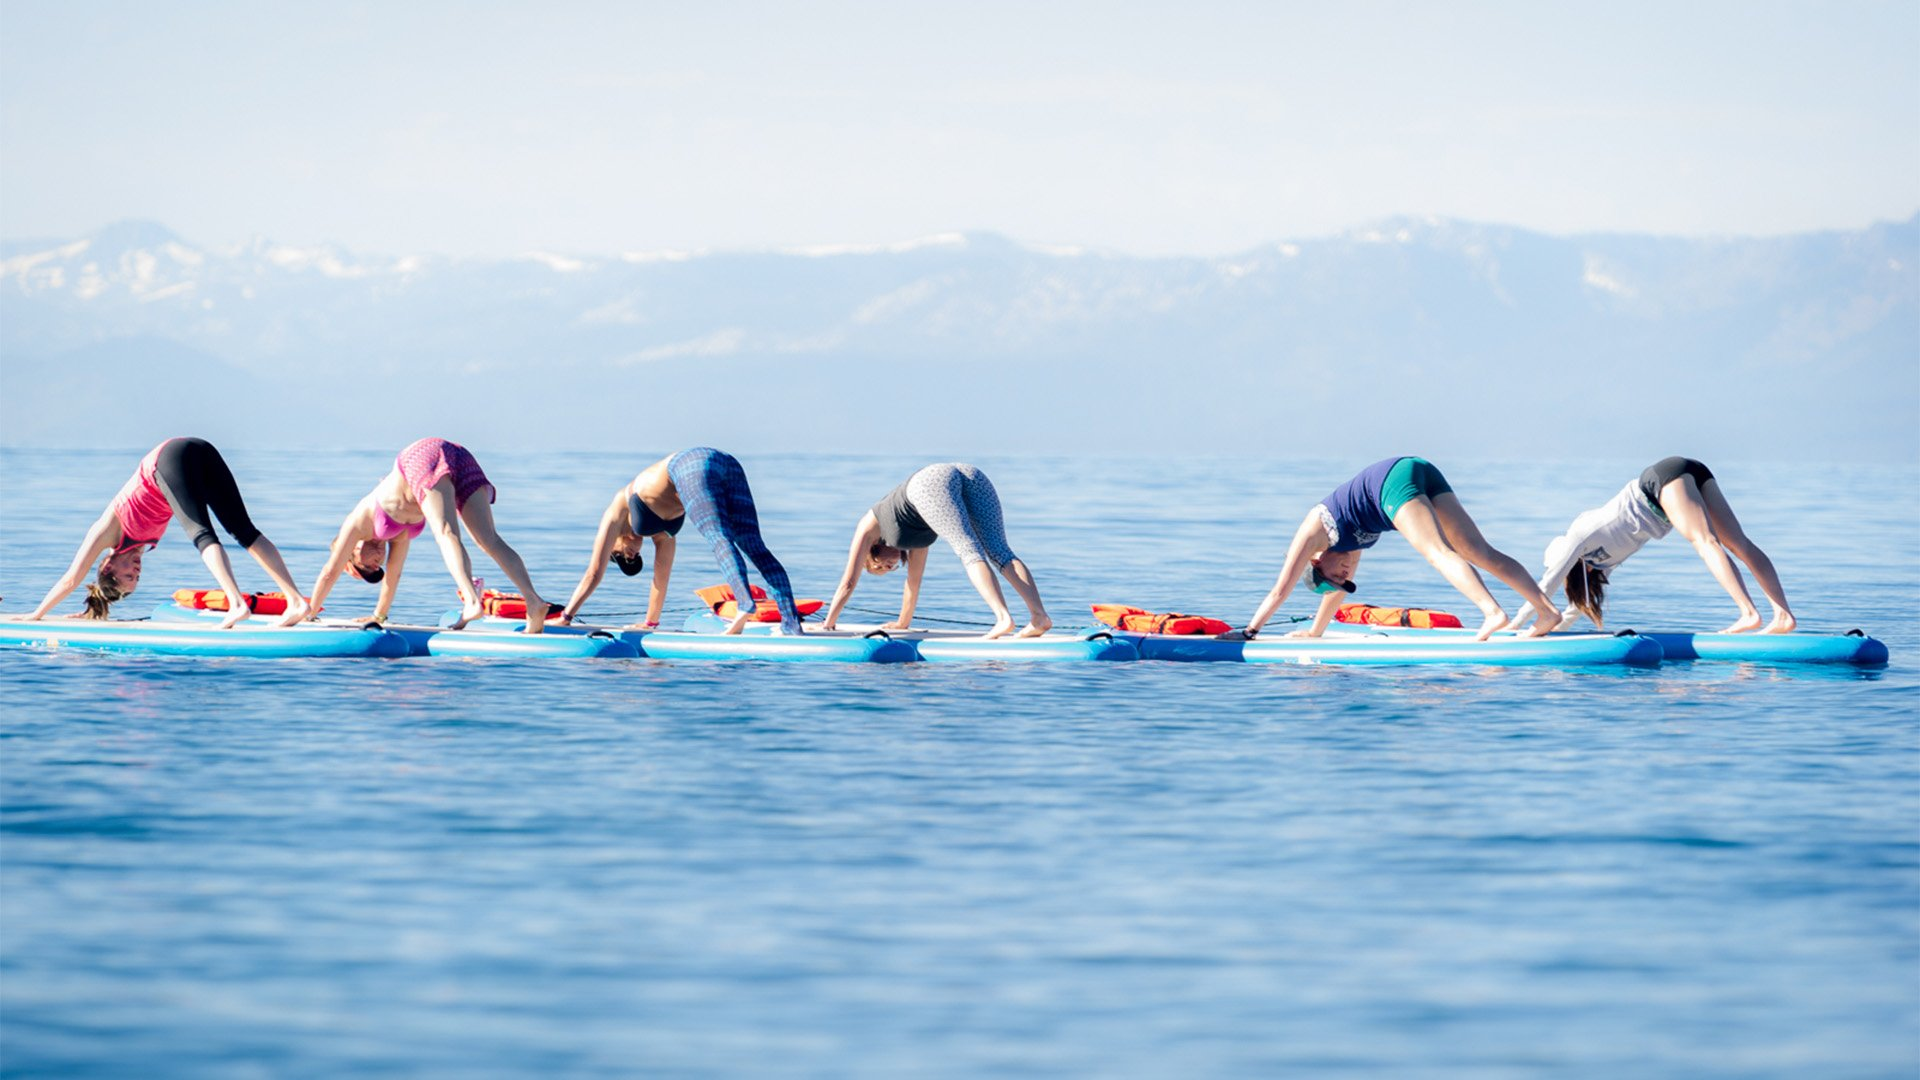 Wanderlust Yoga Festival at Squaw Valley in Lake Tahoe 1920x1080